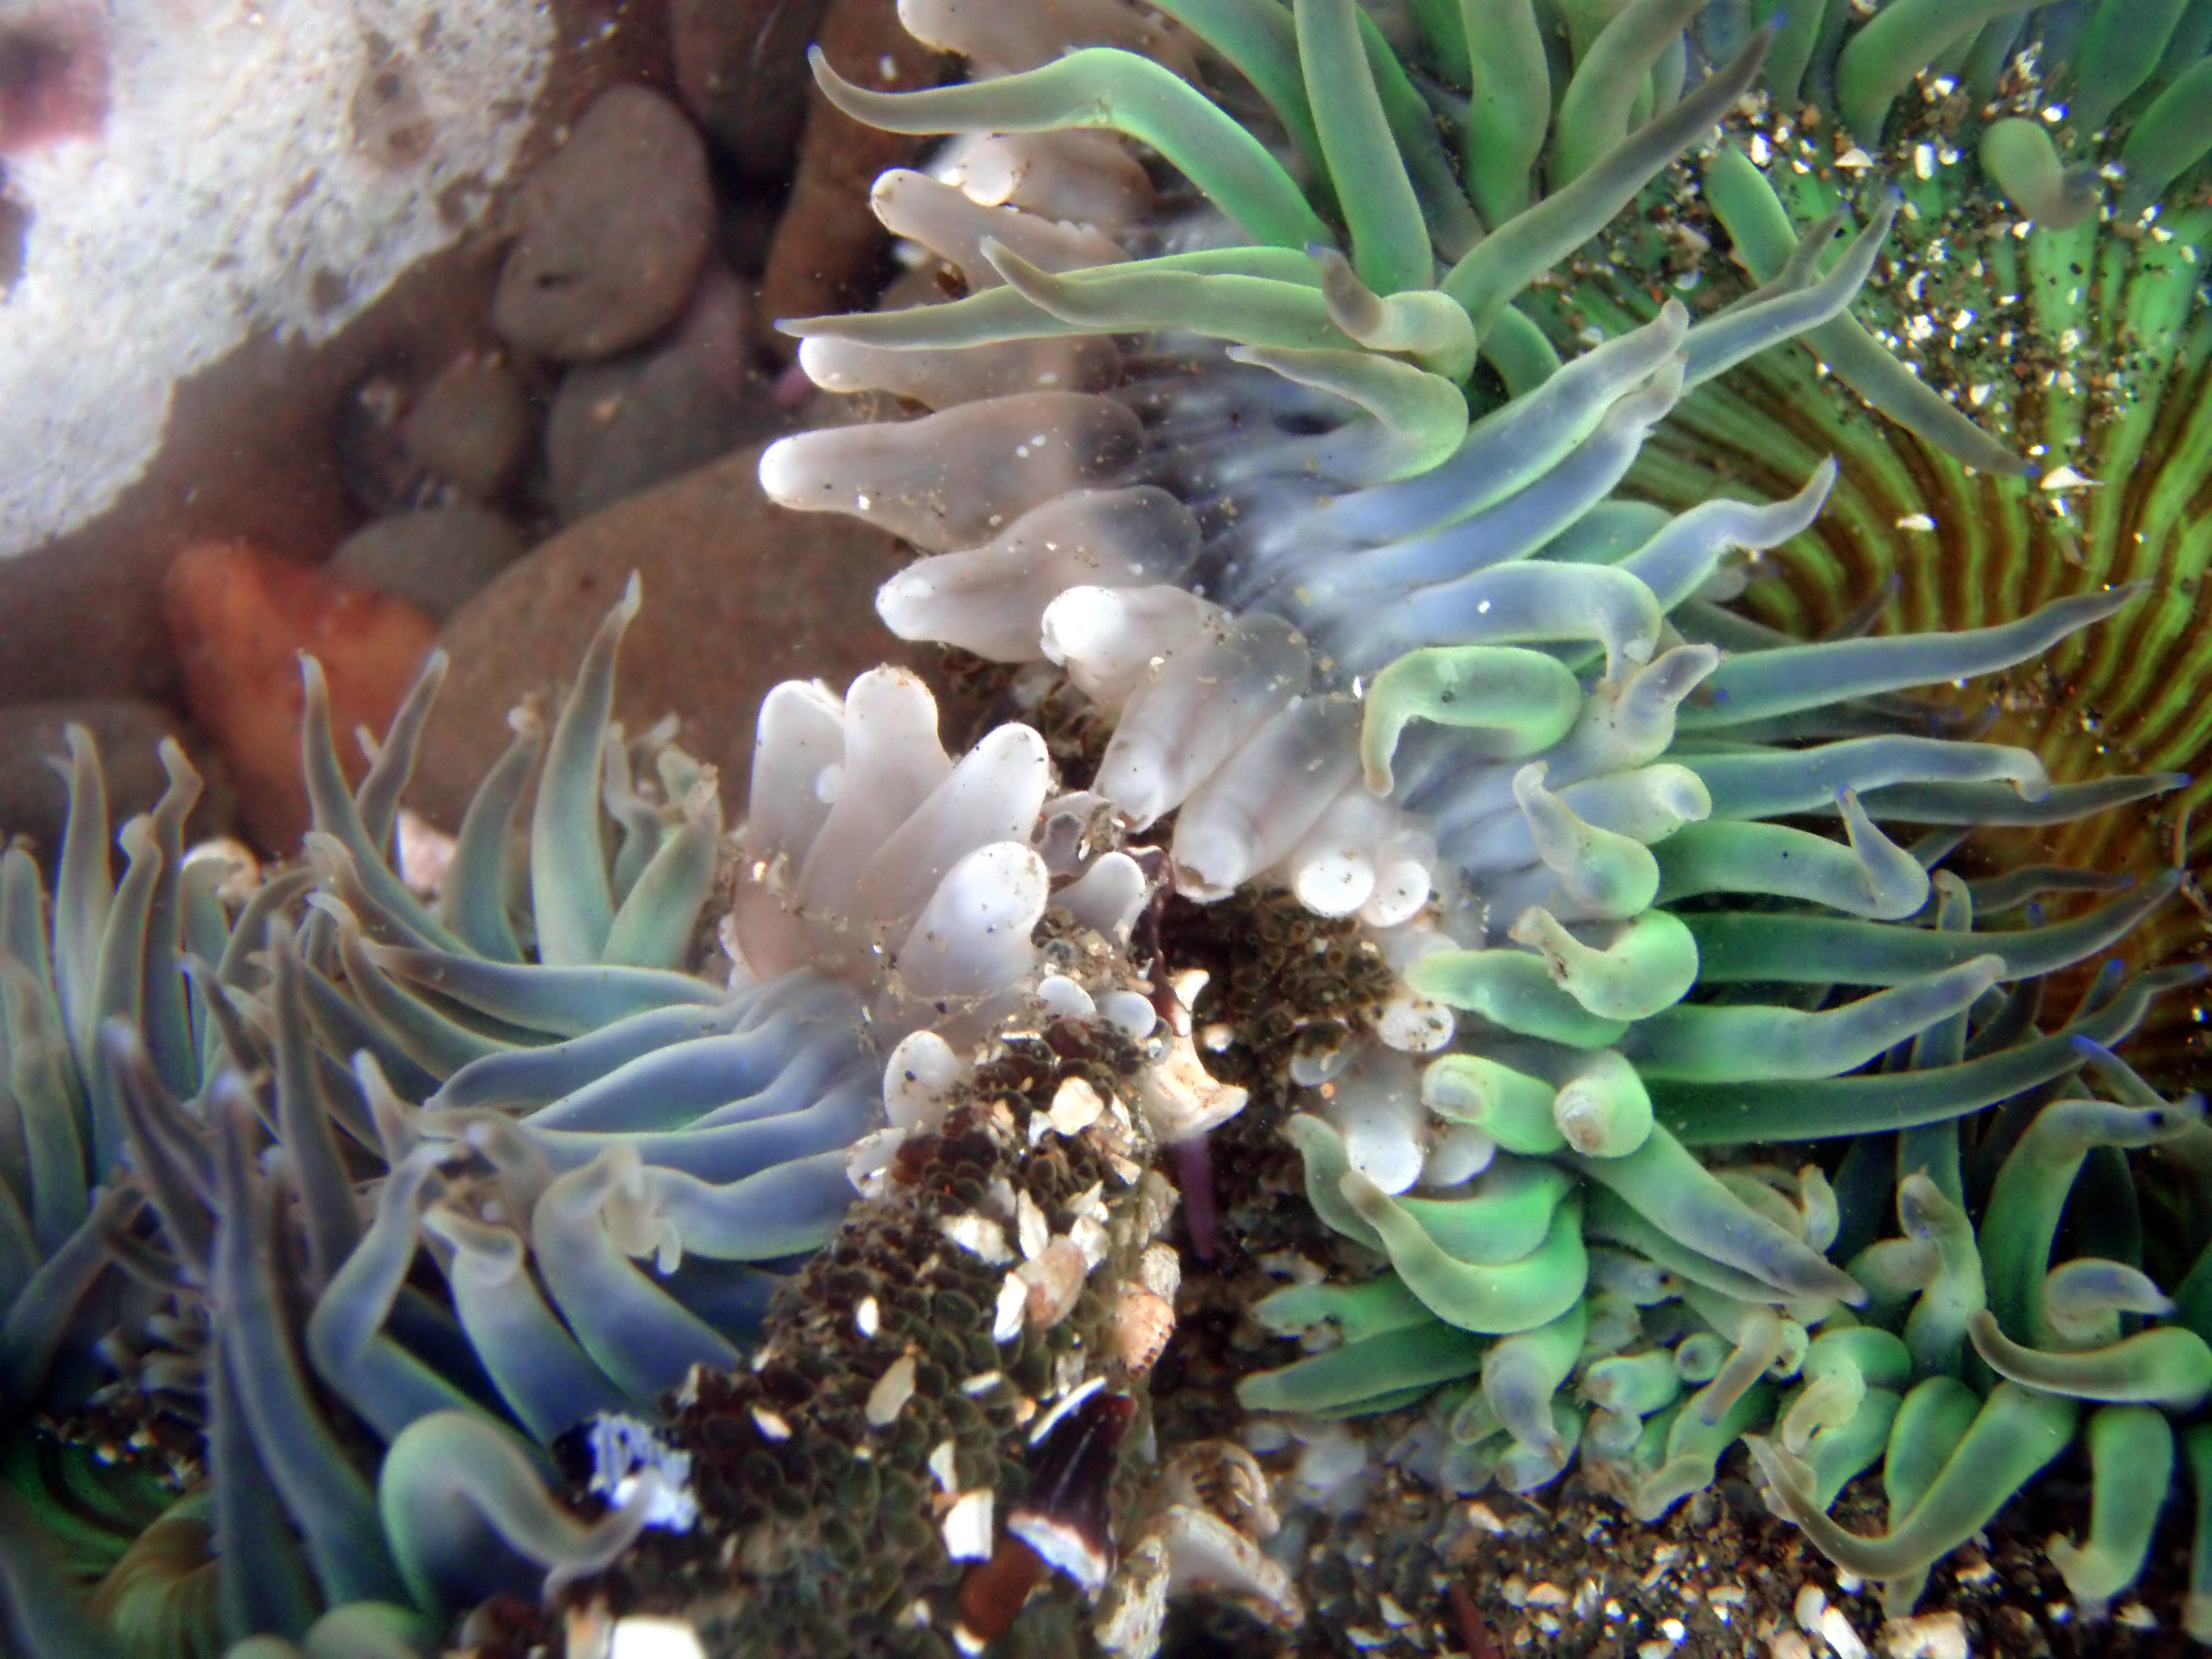 an analysis of the topic of the sea anemones and the clone specific segregation Fission in sea anemones: integrative studies for studying fission in sea anemones culled from a preliminary analysis clone specific segregation in the sea.